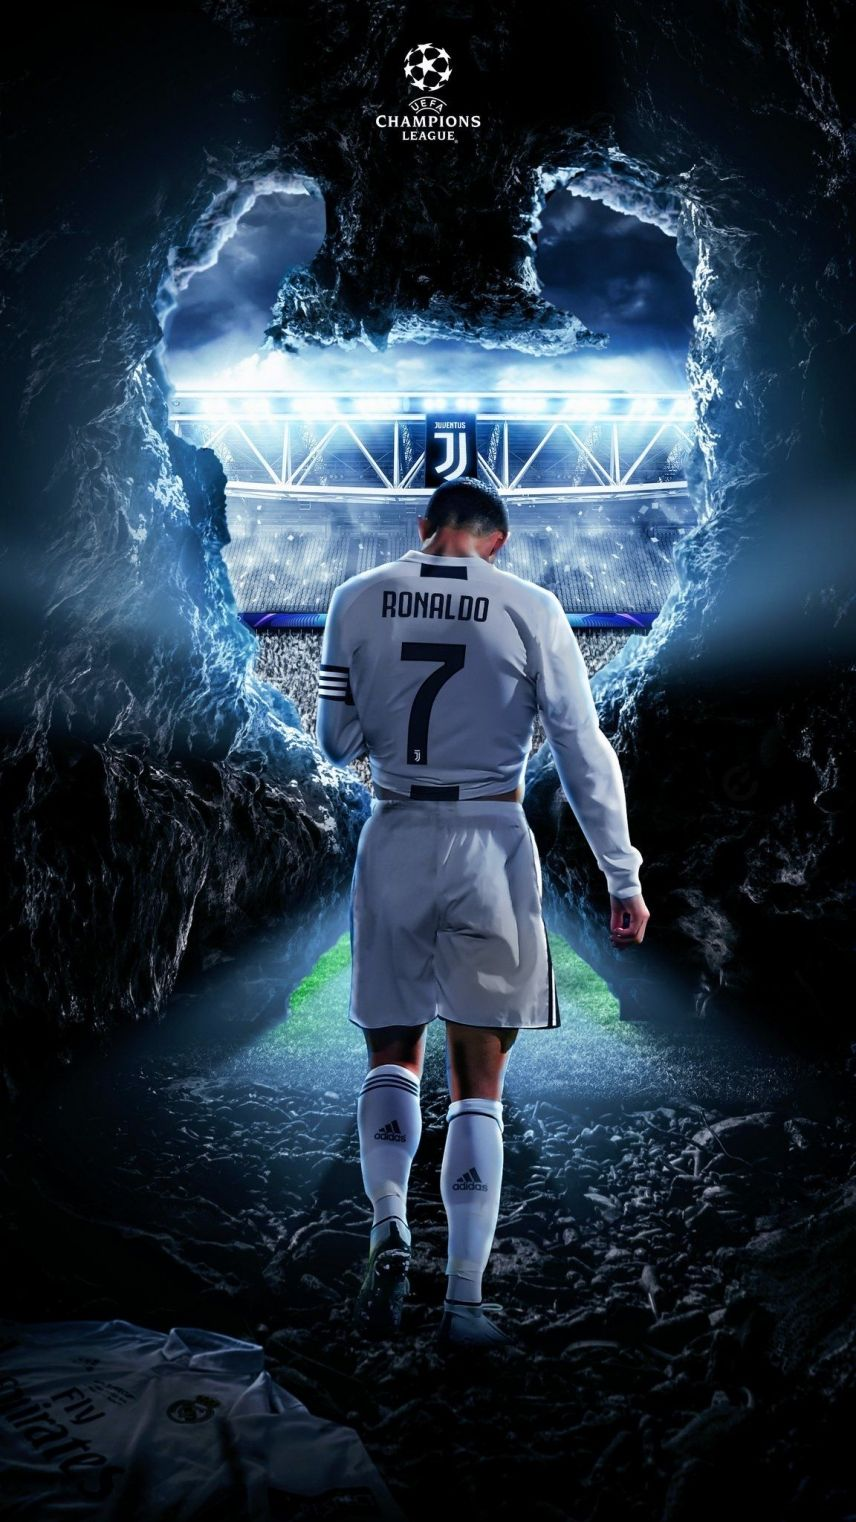 What Makes it the Best cr7 background?